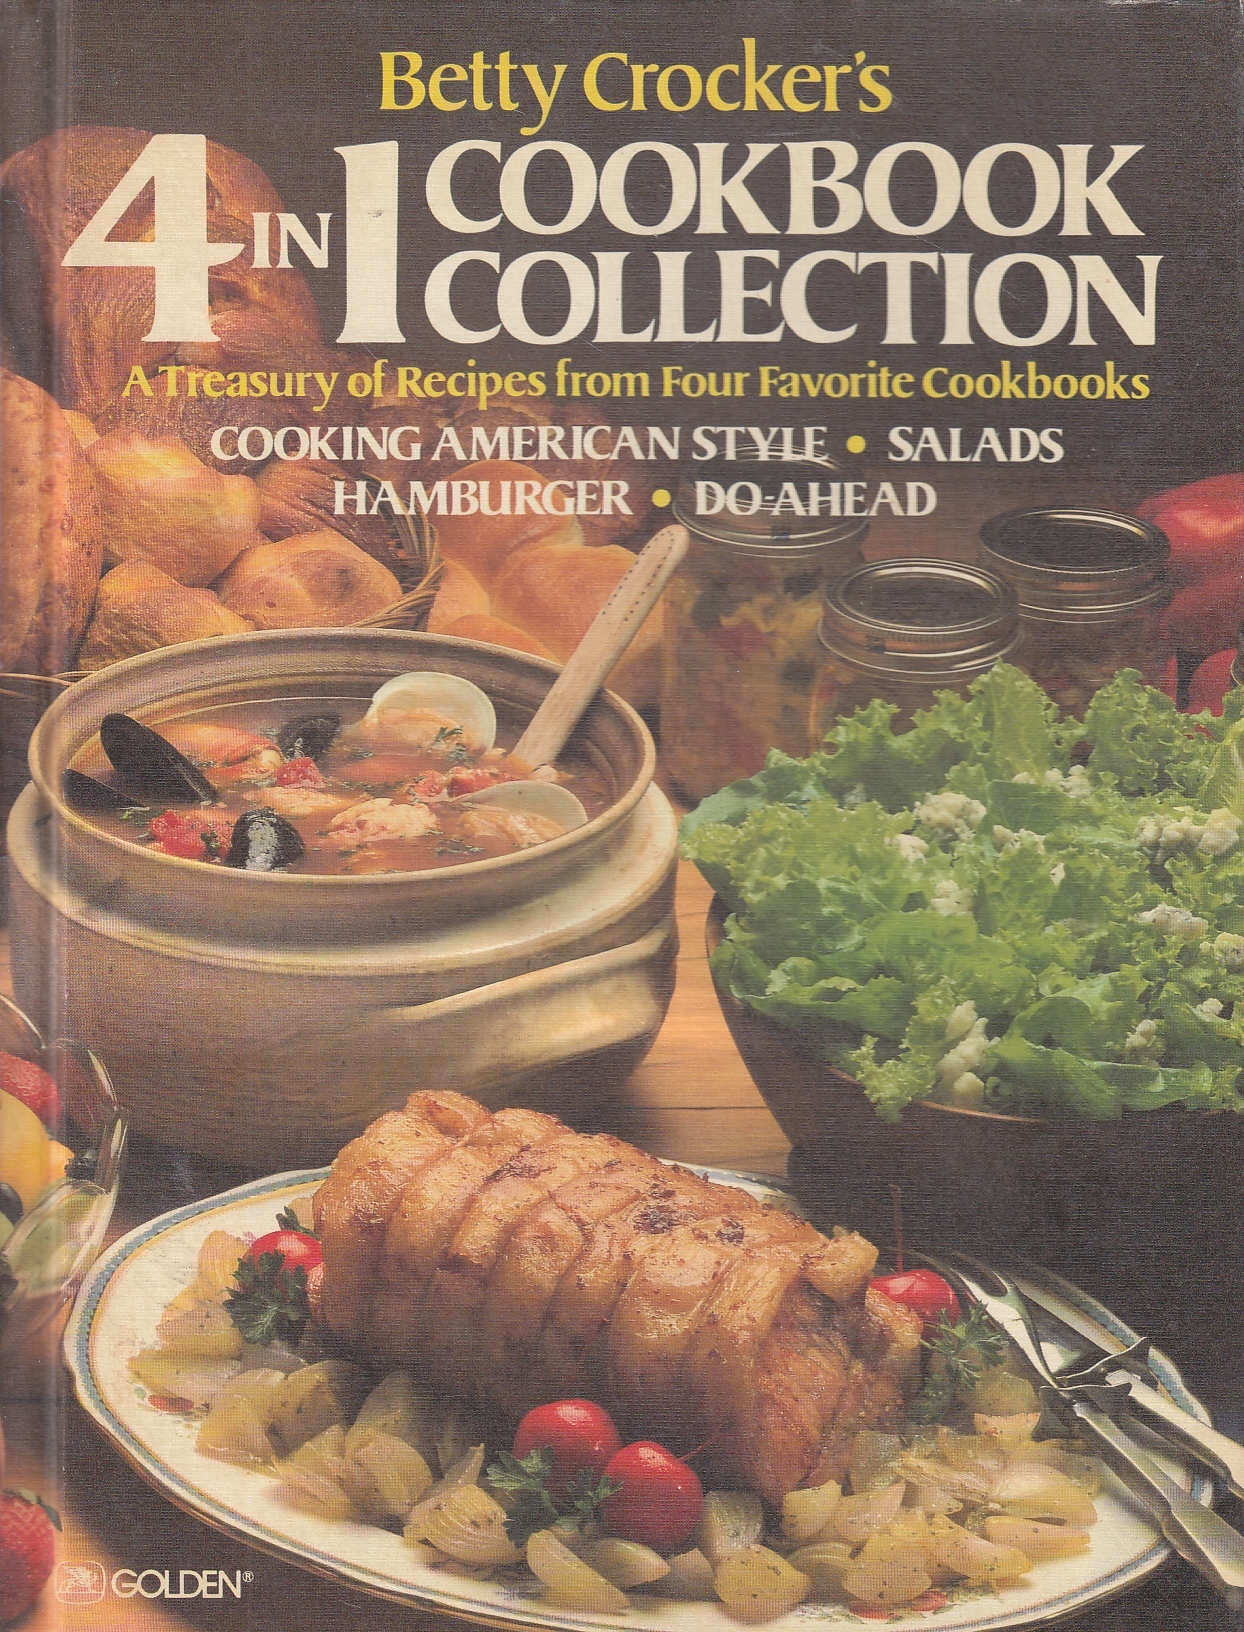 Image for Betty Crocker's 4 in 1 Cookbook Collection